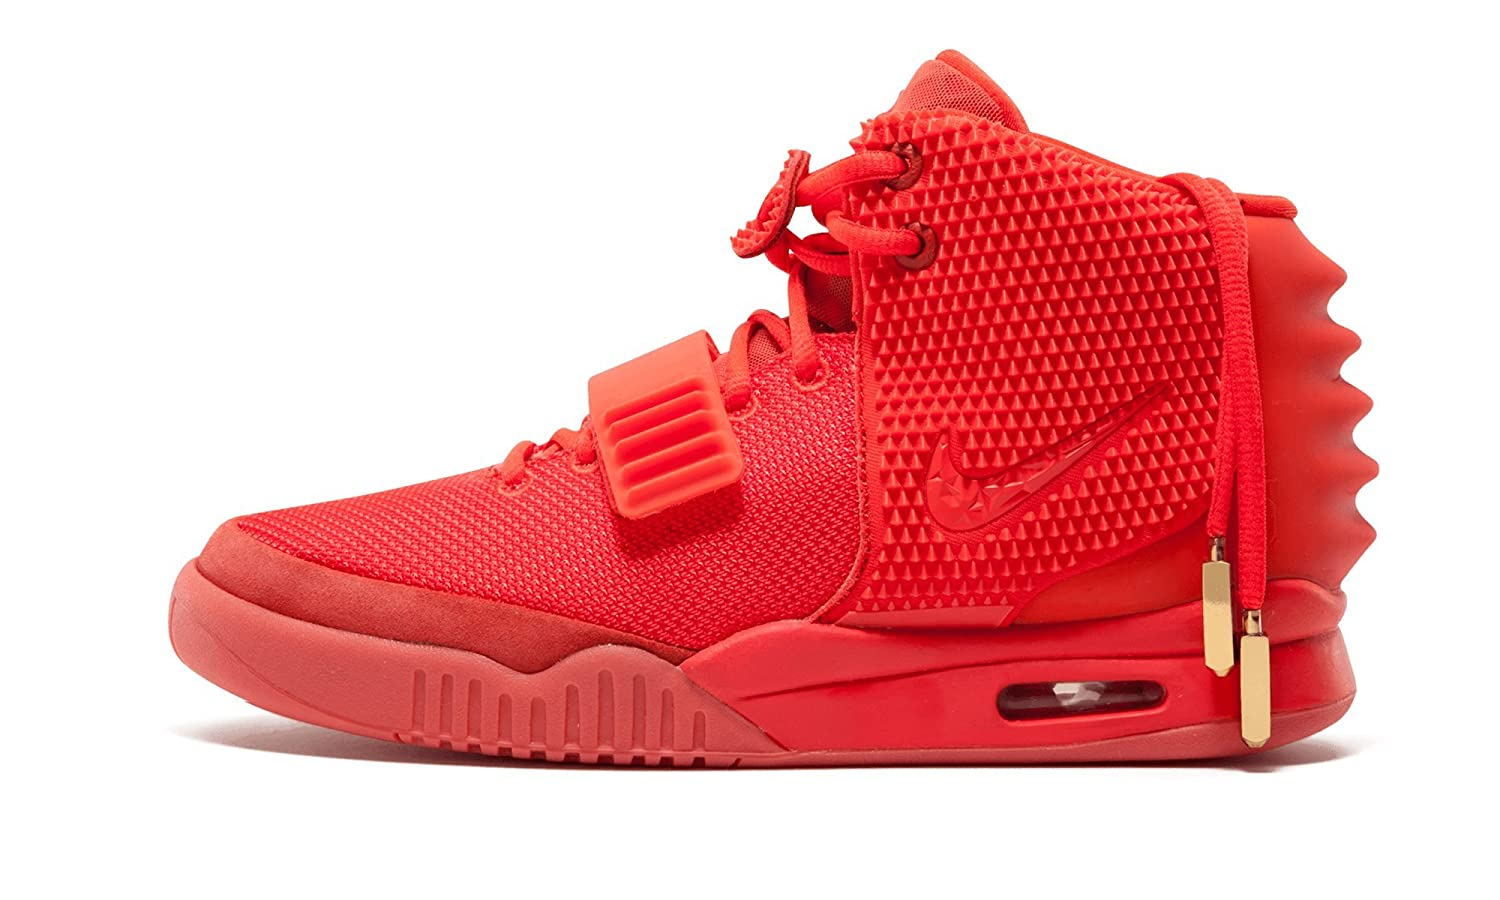 Amazoncom NIKE Air Yeezy SP Red October Road - Medical invoice template authentic online sneaker stores